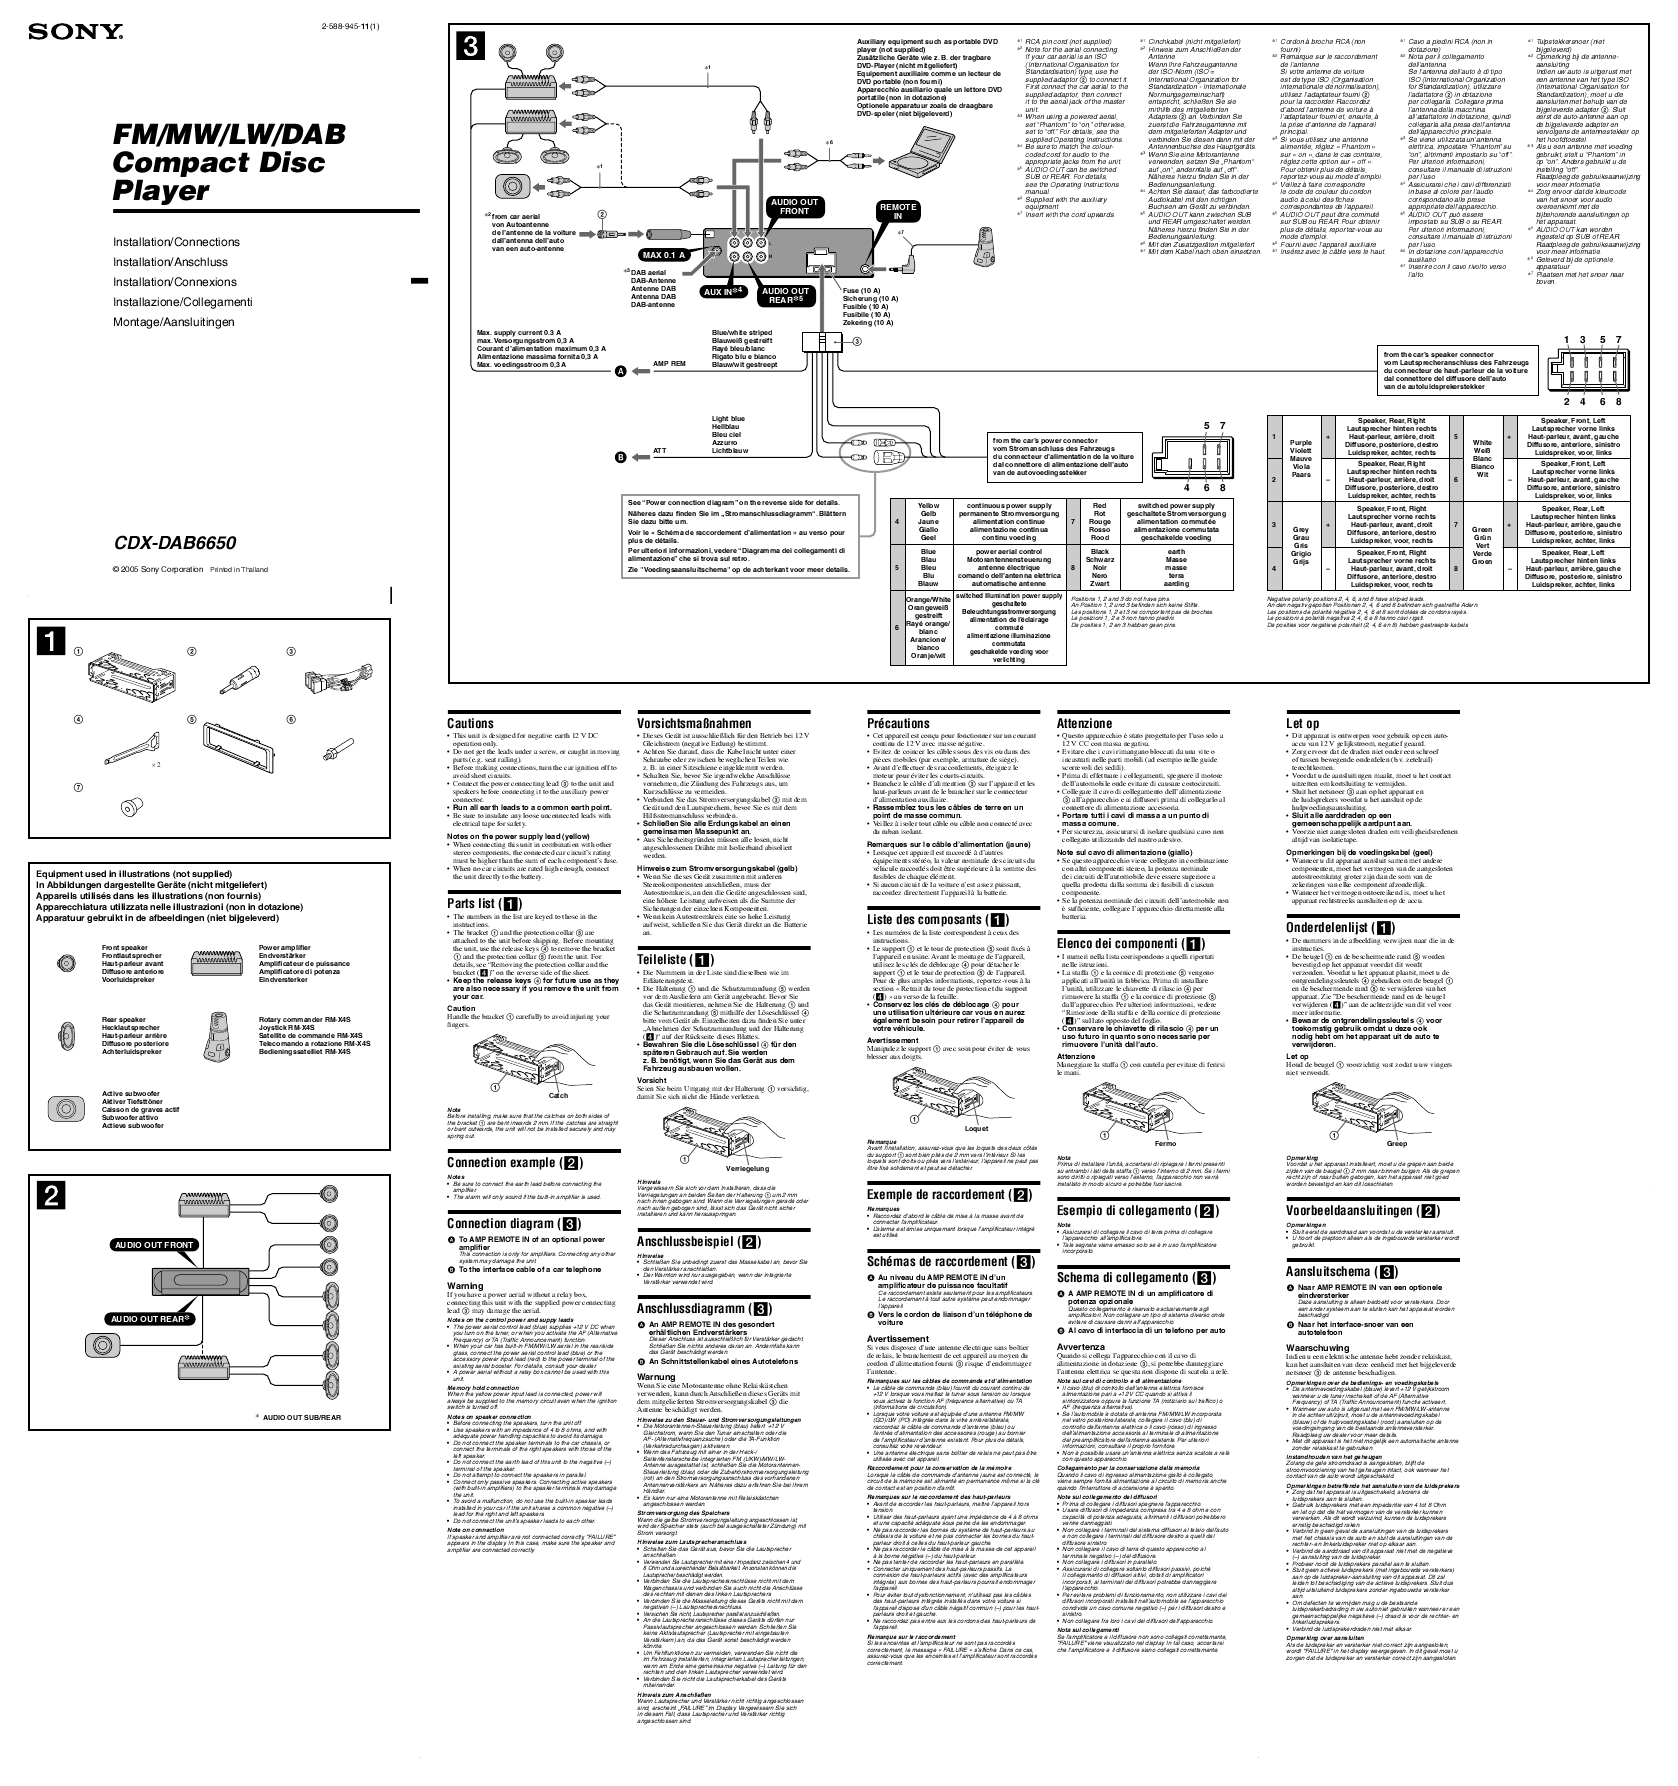 e96449f6 a60d ab84 213a 1adde8d5bfa4 000001?resize\\\=665%2C708 sony mex bt2700 wiring diagram sony wiring diagrams collection  at gsmx.co